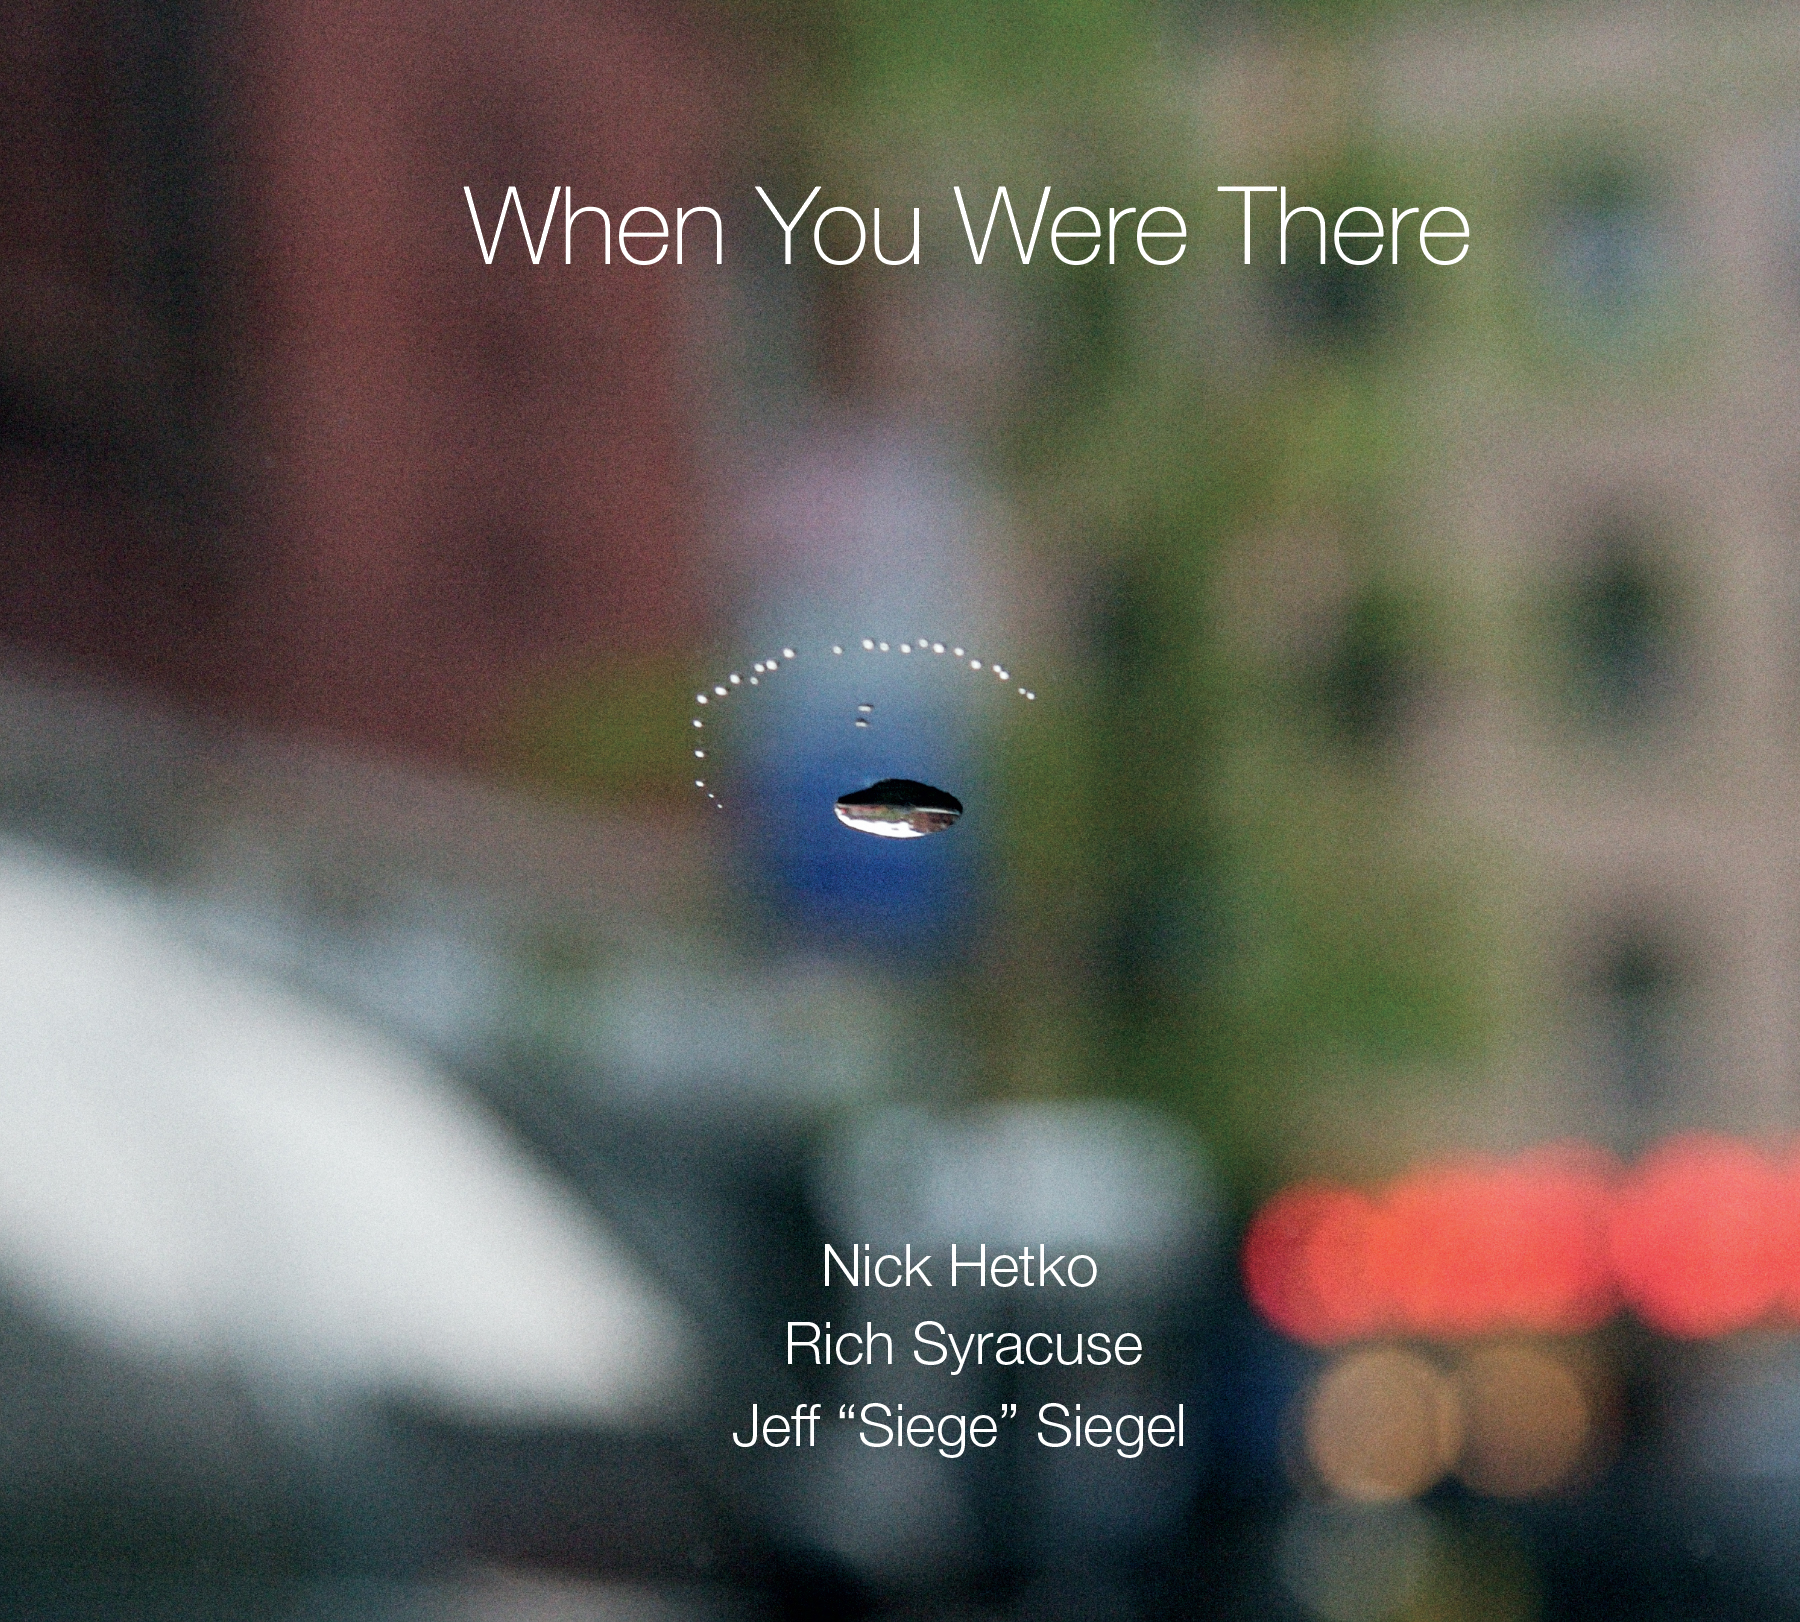 REVIEW:Jeff 'Siege' Siegel, Nick Hetko and Rich Syracuse's 'When You Were There' Reviewed by All About Jazz